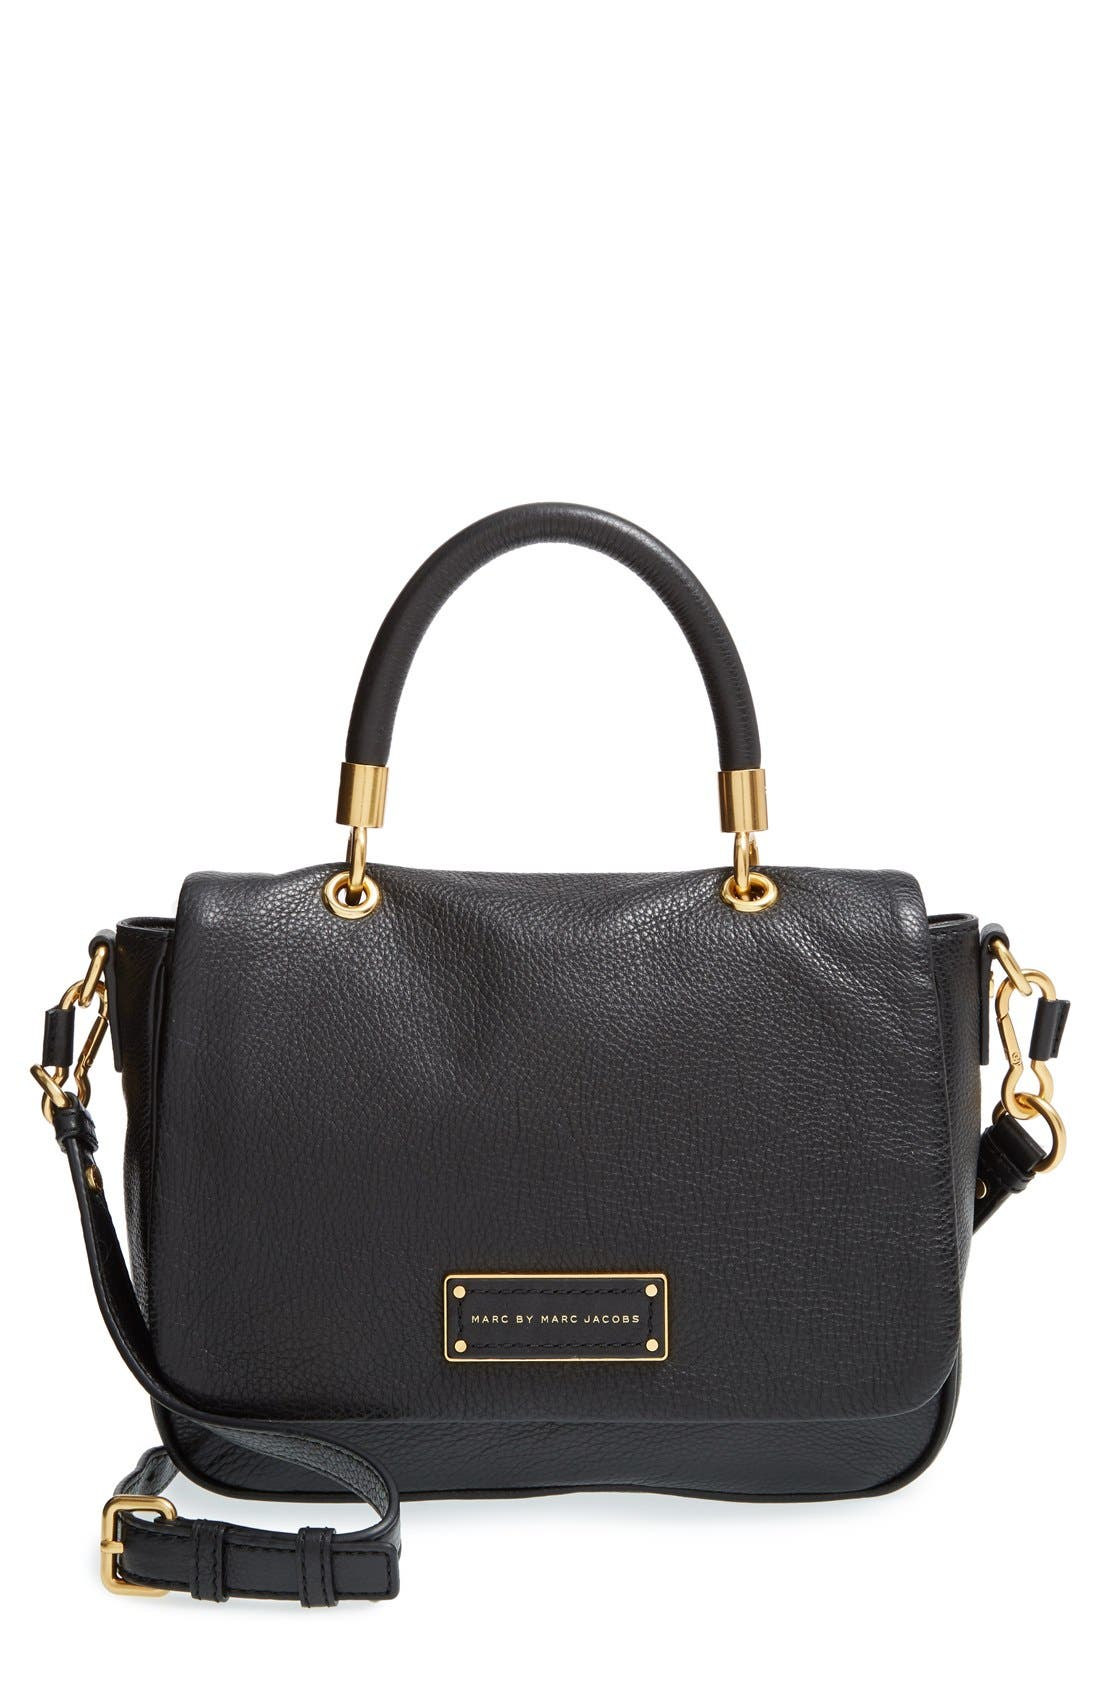 MARC BY MARC JACOBS 'Small Too Hot To Handle' Leather Tote,                             Main thumbnail 1, color,                             Black